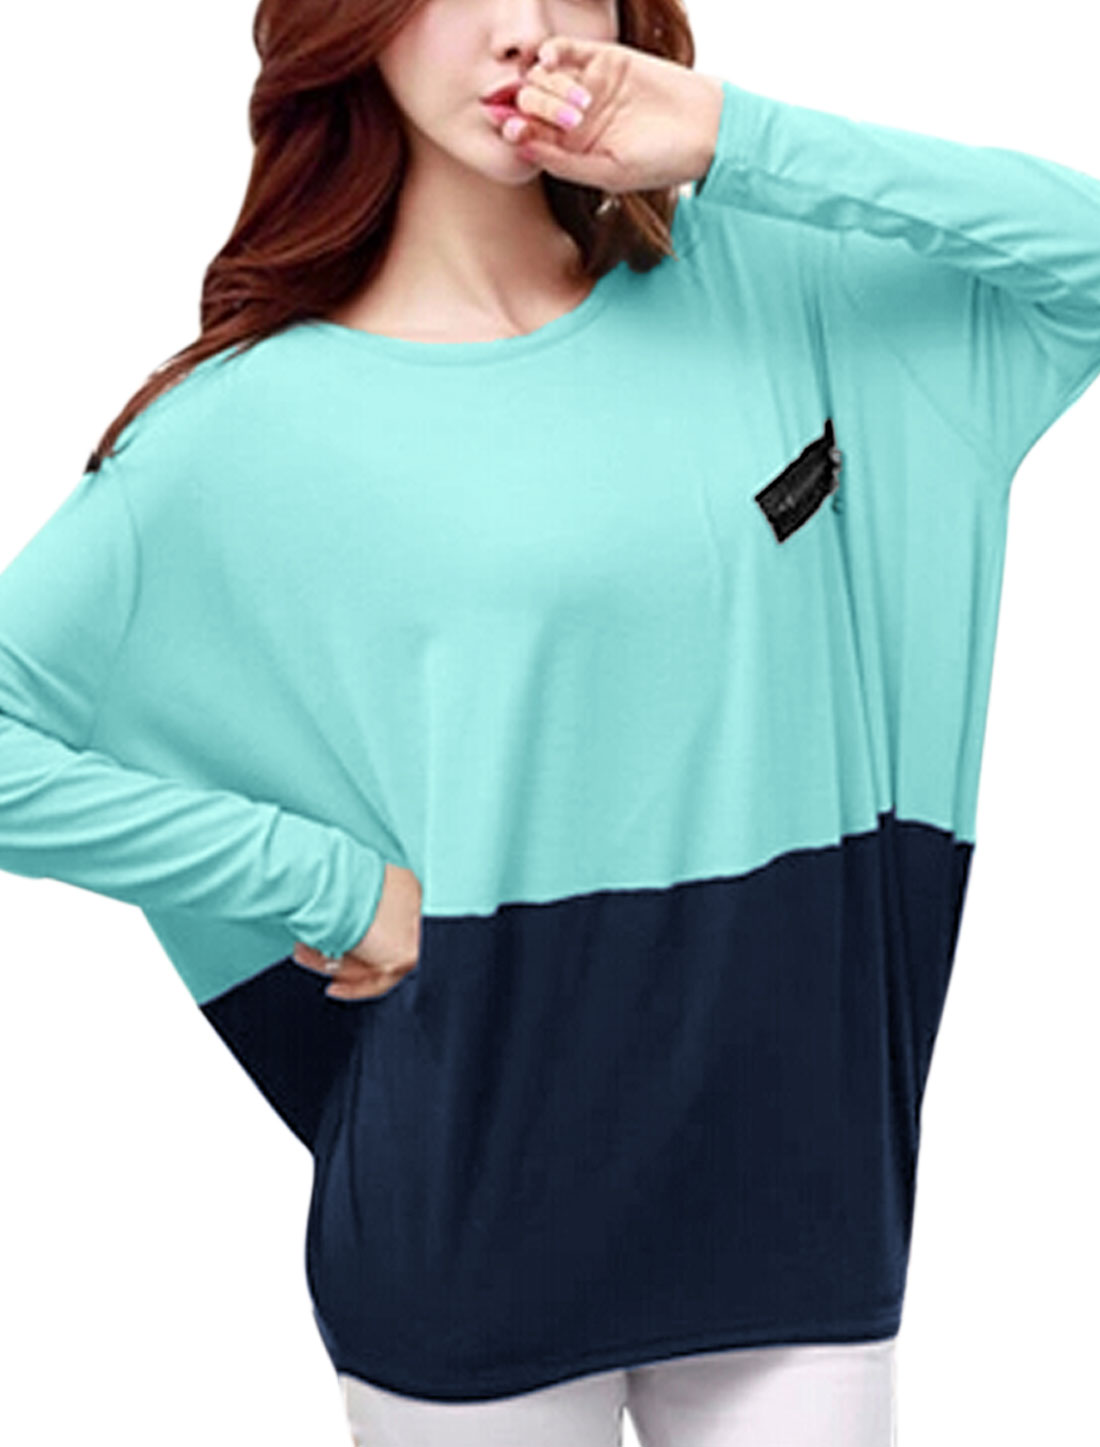 Lady Round Neck Long Batwing Sleeve Color Block Tee Shirt Sky Blue Navy Blue L